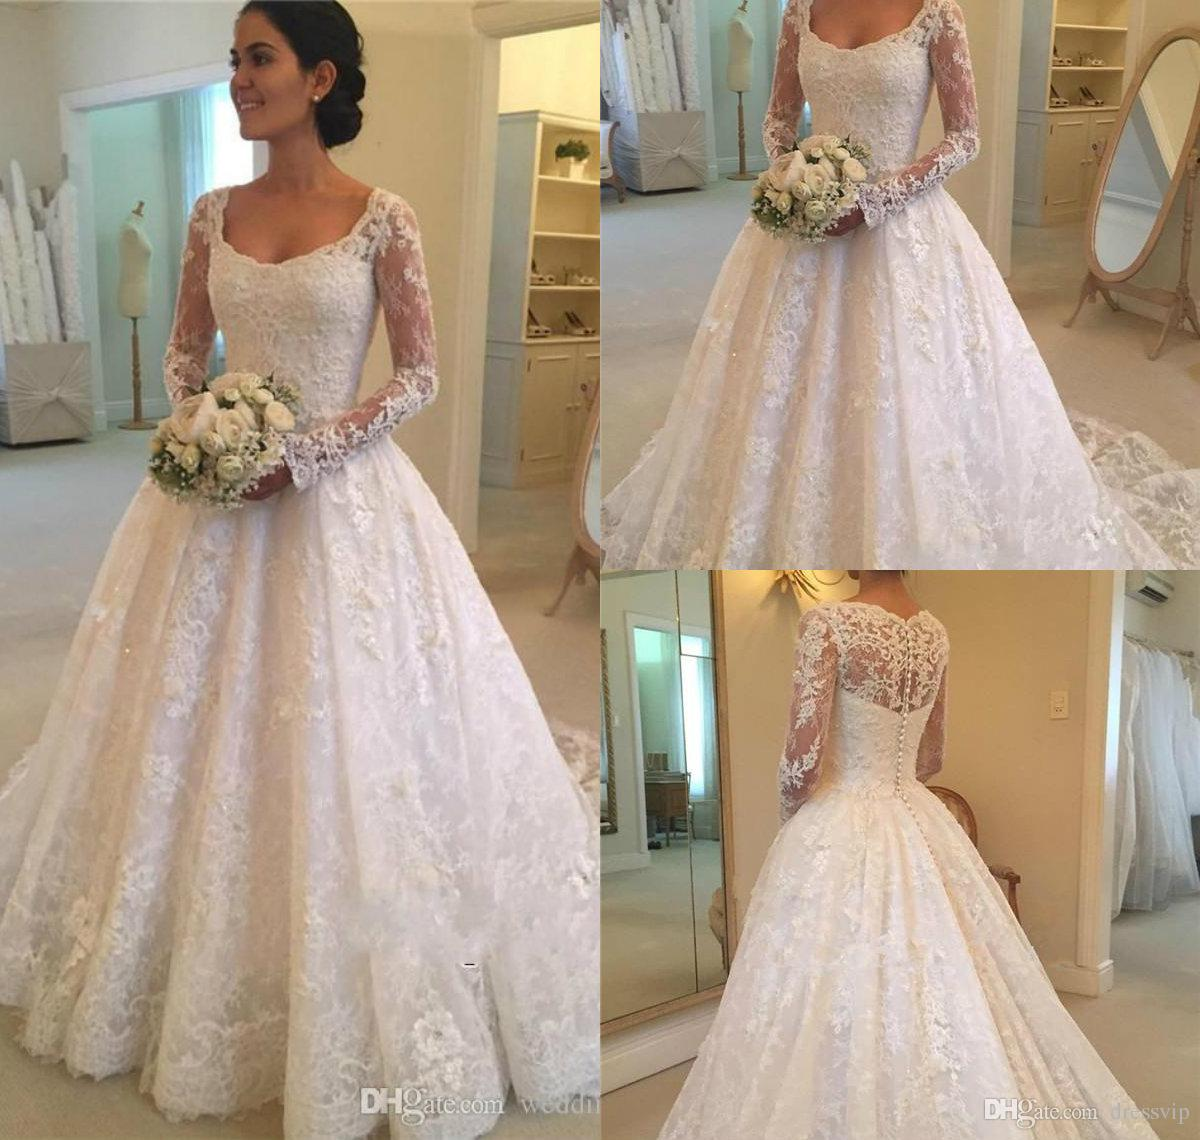 5feb088e6e12 Discount 2018 A Line Long Sleeve Wedding Dresses Scoop Neck Lace Appliques  Button Back Beaded Country Bridal Wedding Gowns Custom Made Women Dress  Slim A ...